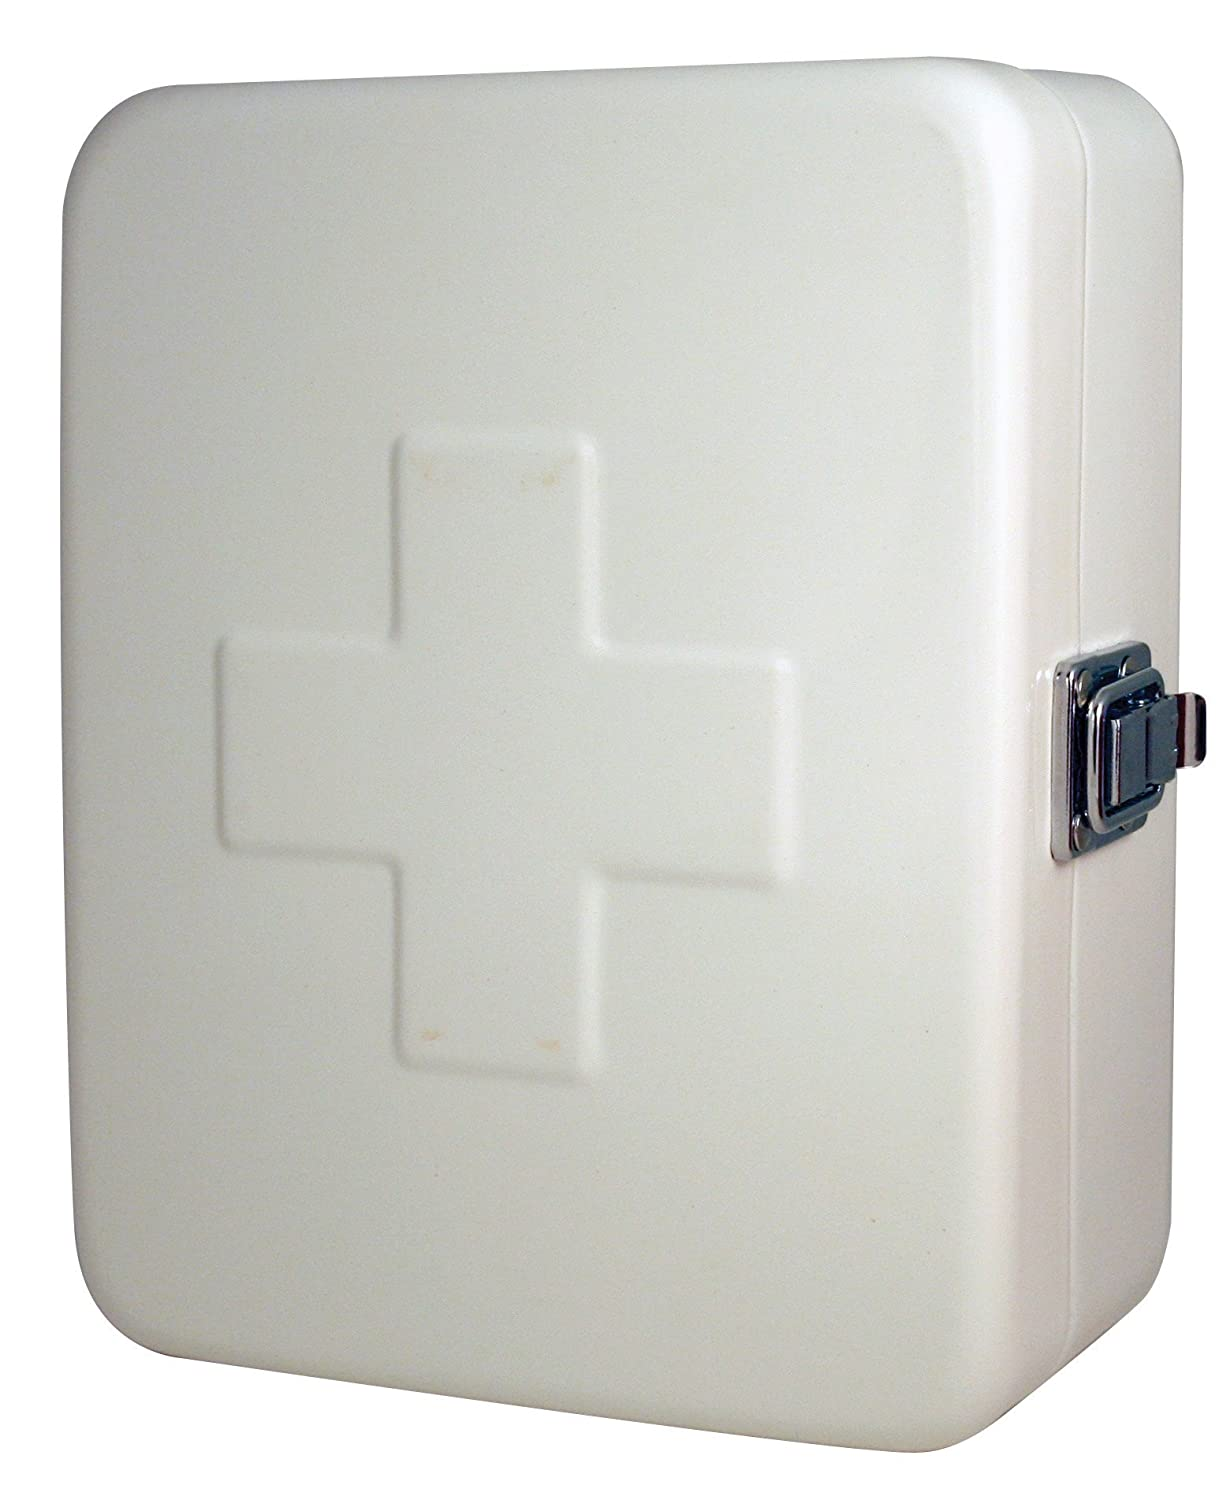 Bon Amazon.com: Kikkerland Empty First Aid Box, Small, 6 By 7.5 Inches, White:  Health U0026 Personal Care